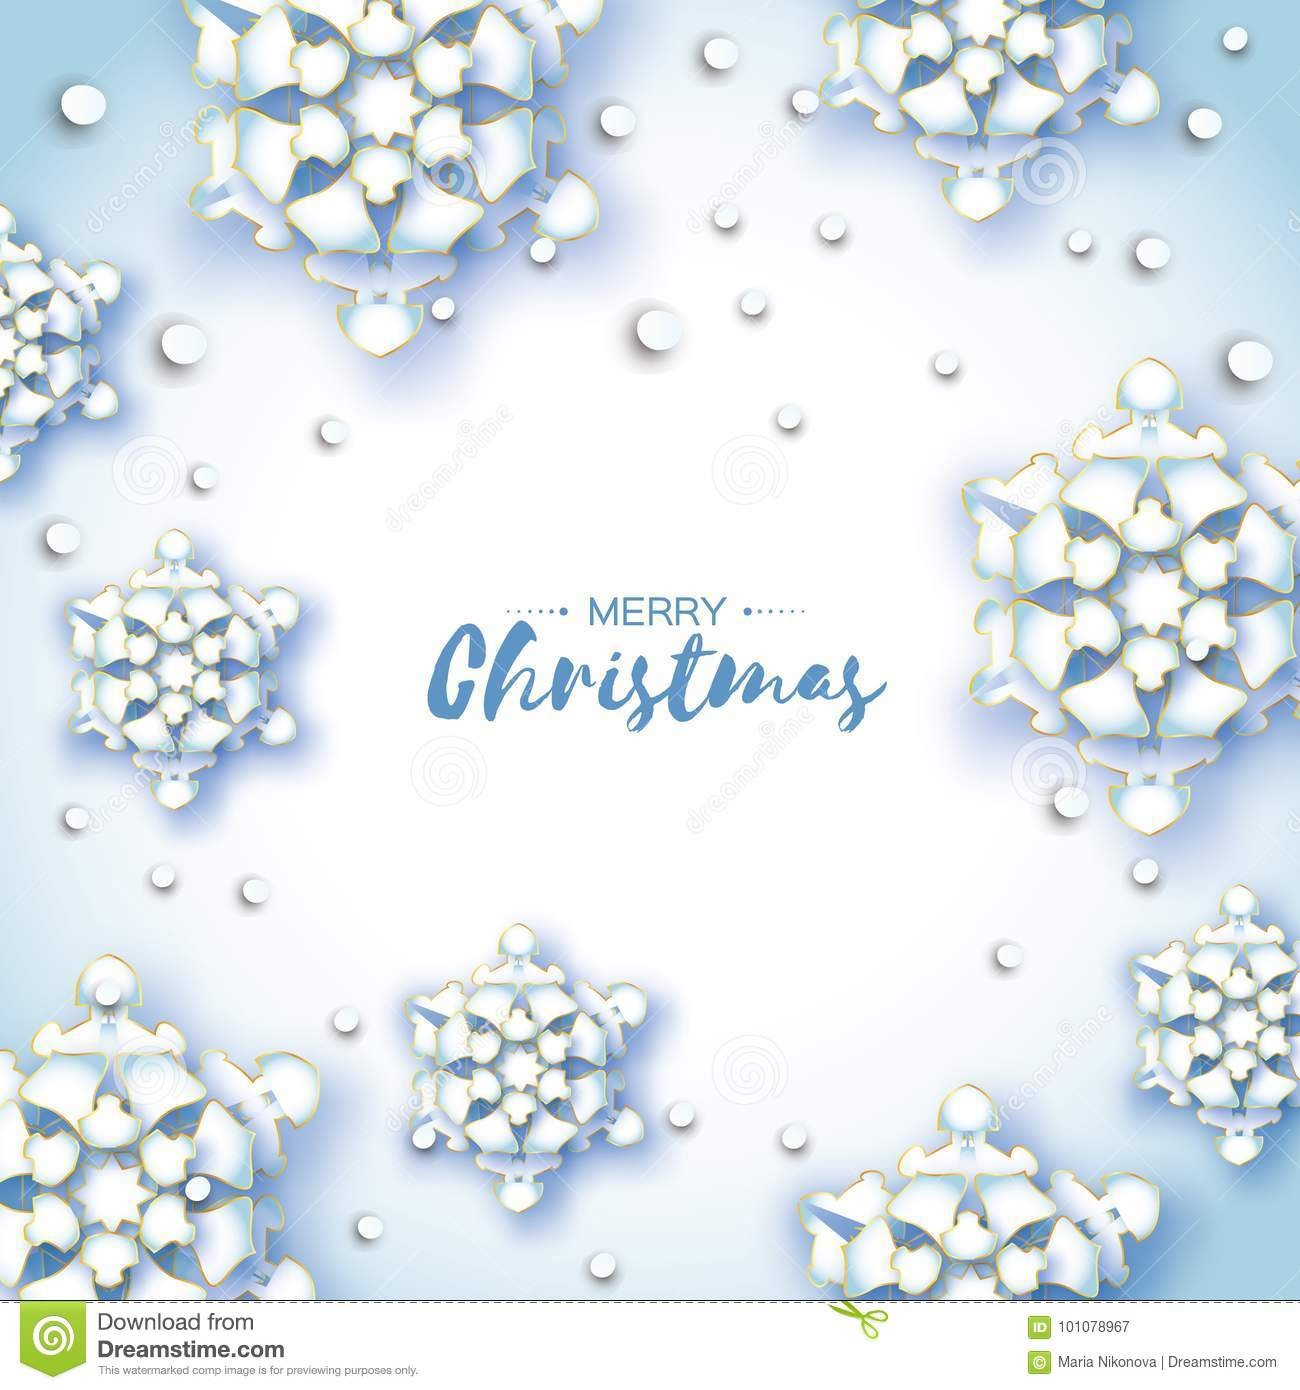 Origami Snowfall. Merry Christmas Greetings Card. White Paper Cut ...